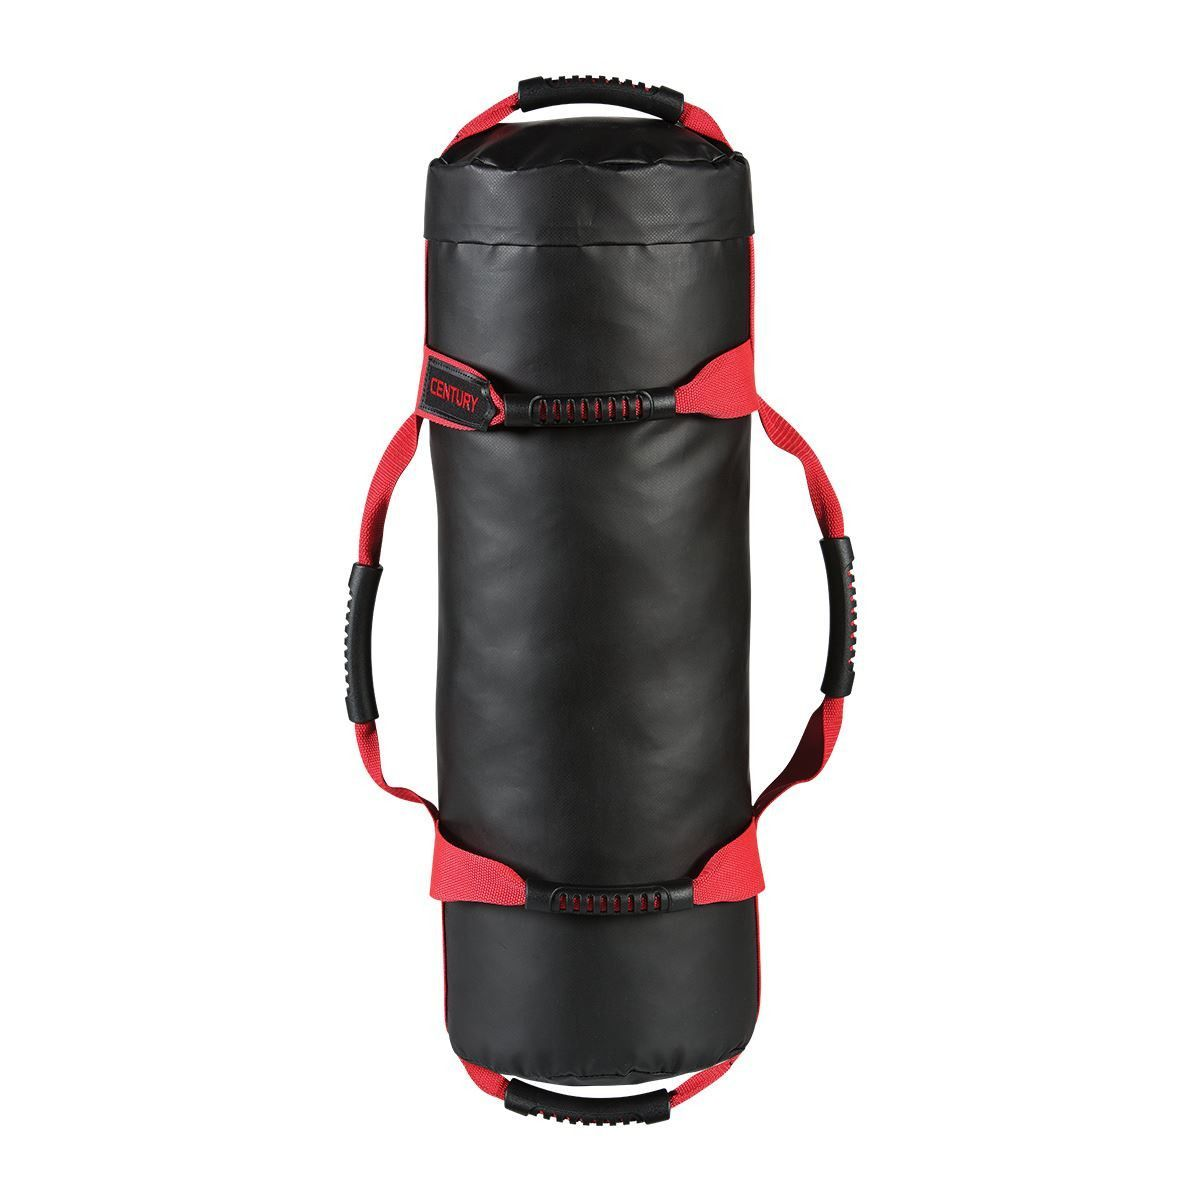 CENTURY Weighted Fitness Bag c10947. The Weighted Fitness